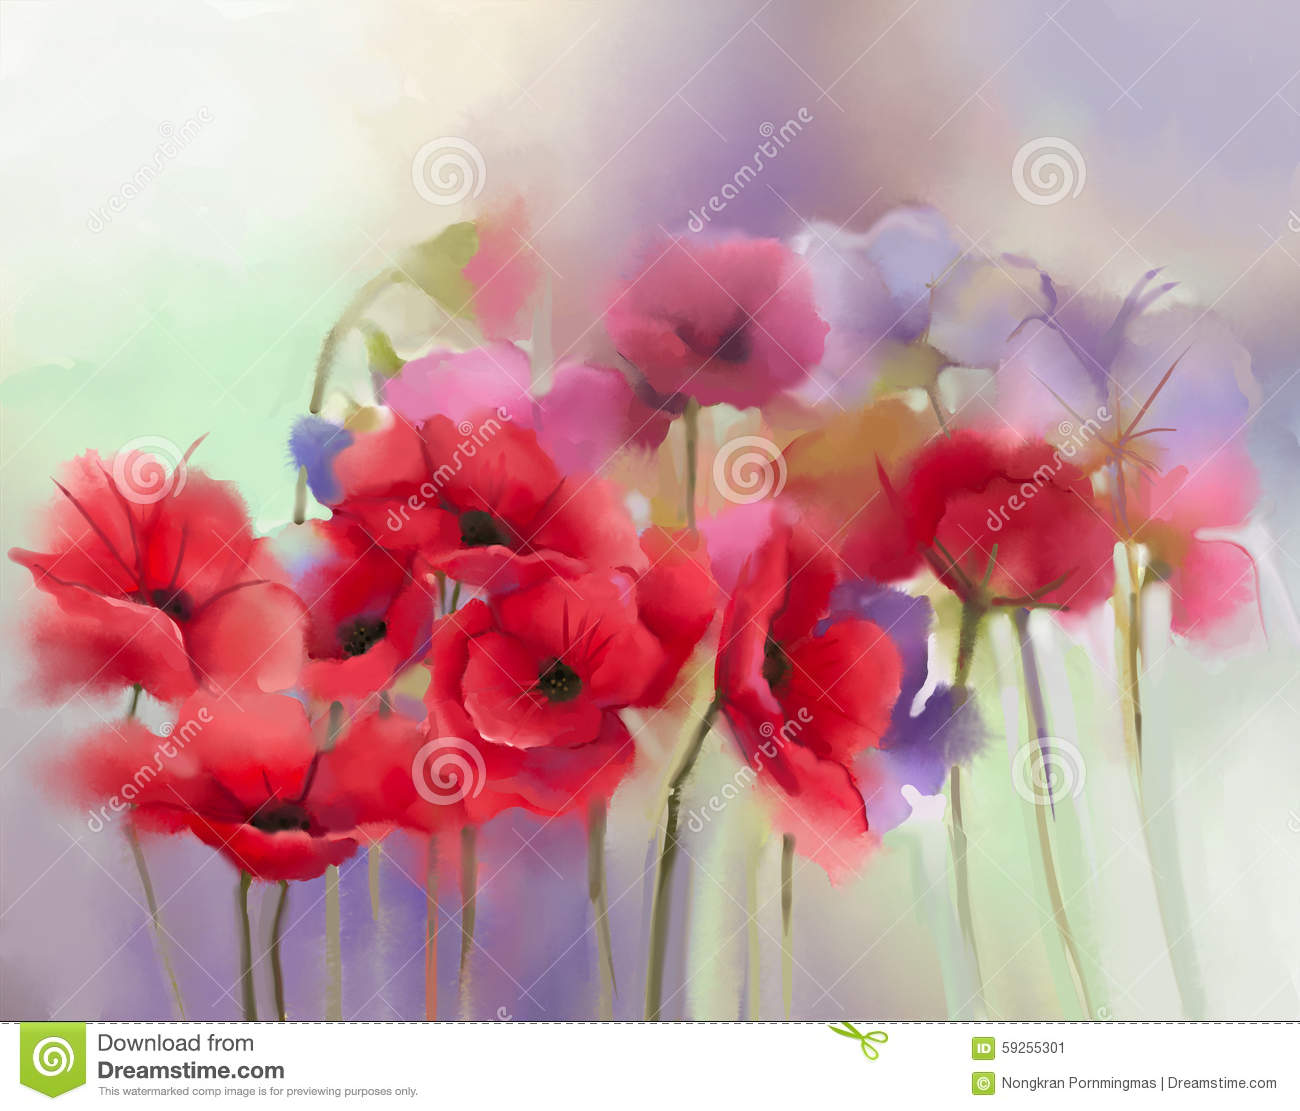 Watercolor red poppy flowers painting stock illustration watercolor red poppy flowers painting mightylinksfo